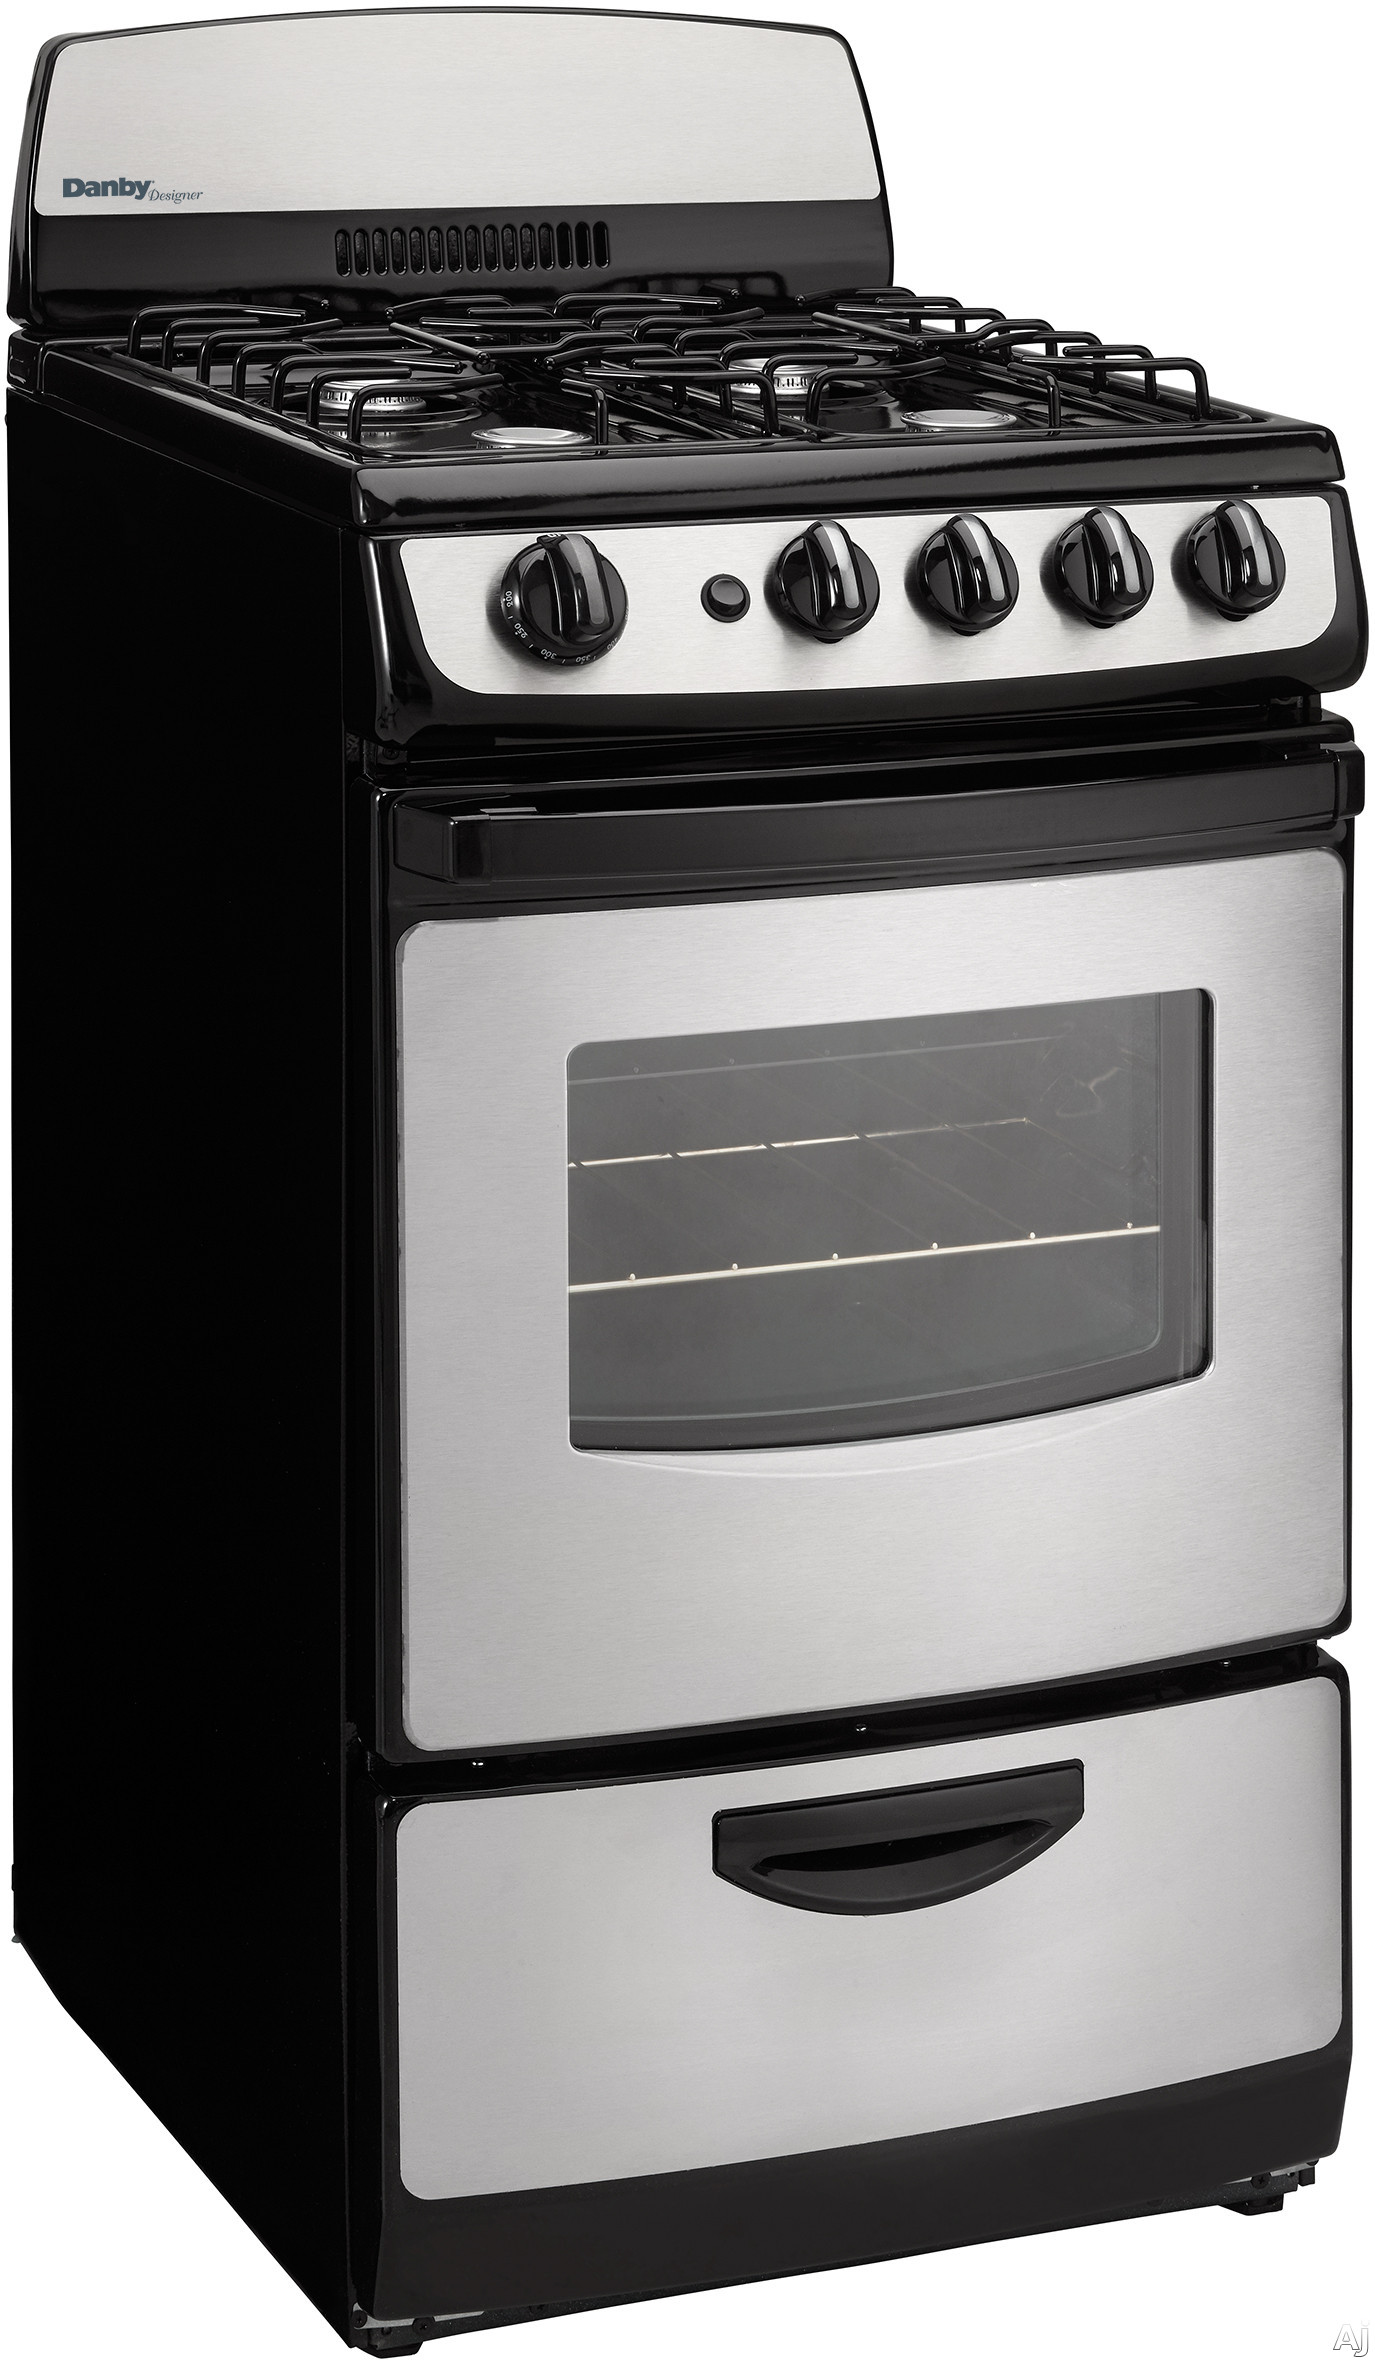 Danby Designer Series DR201BSSGLP 20 Inch Freestanding Gas Range with 4 Open Burners, 2.4 Cu. Ft. Oven Capacity, 2 Oven Racks, 4 Adjustable Oven Rack Positions, Bottom Drawer Broiler and 3-Piece Broil